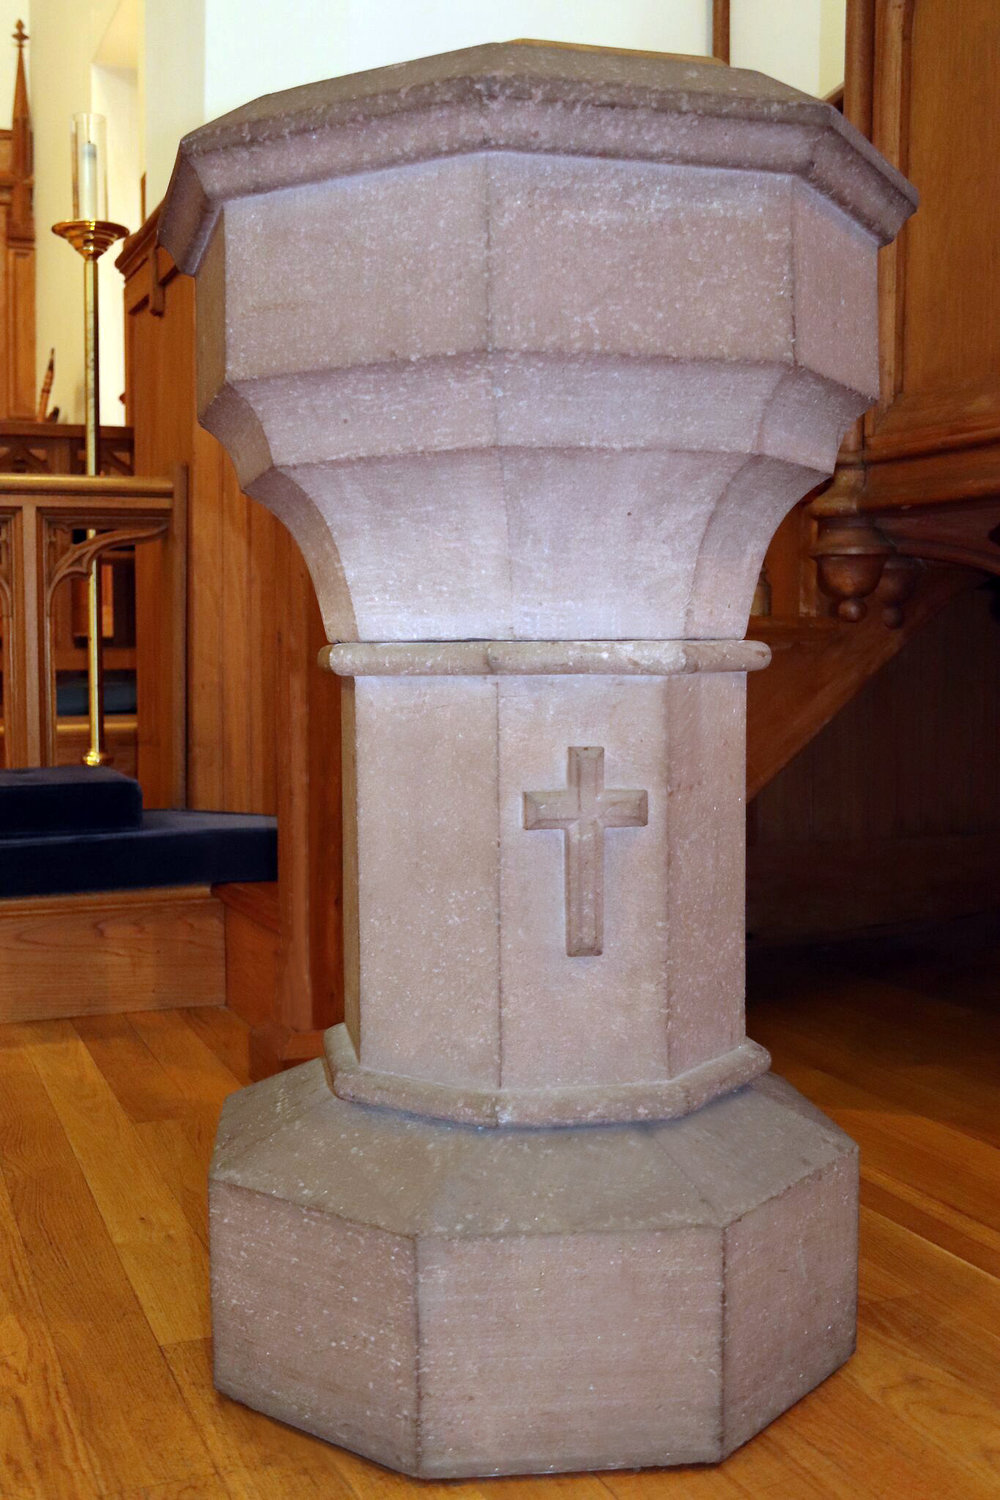 calvary church baptismal font.jpg